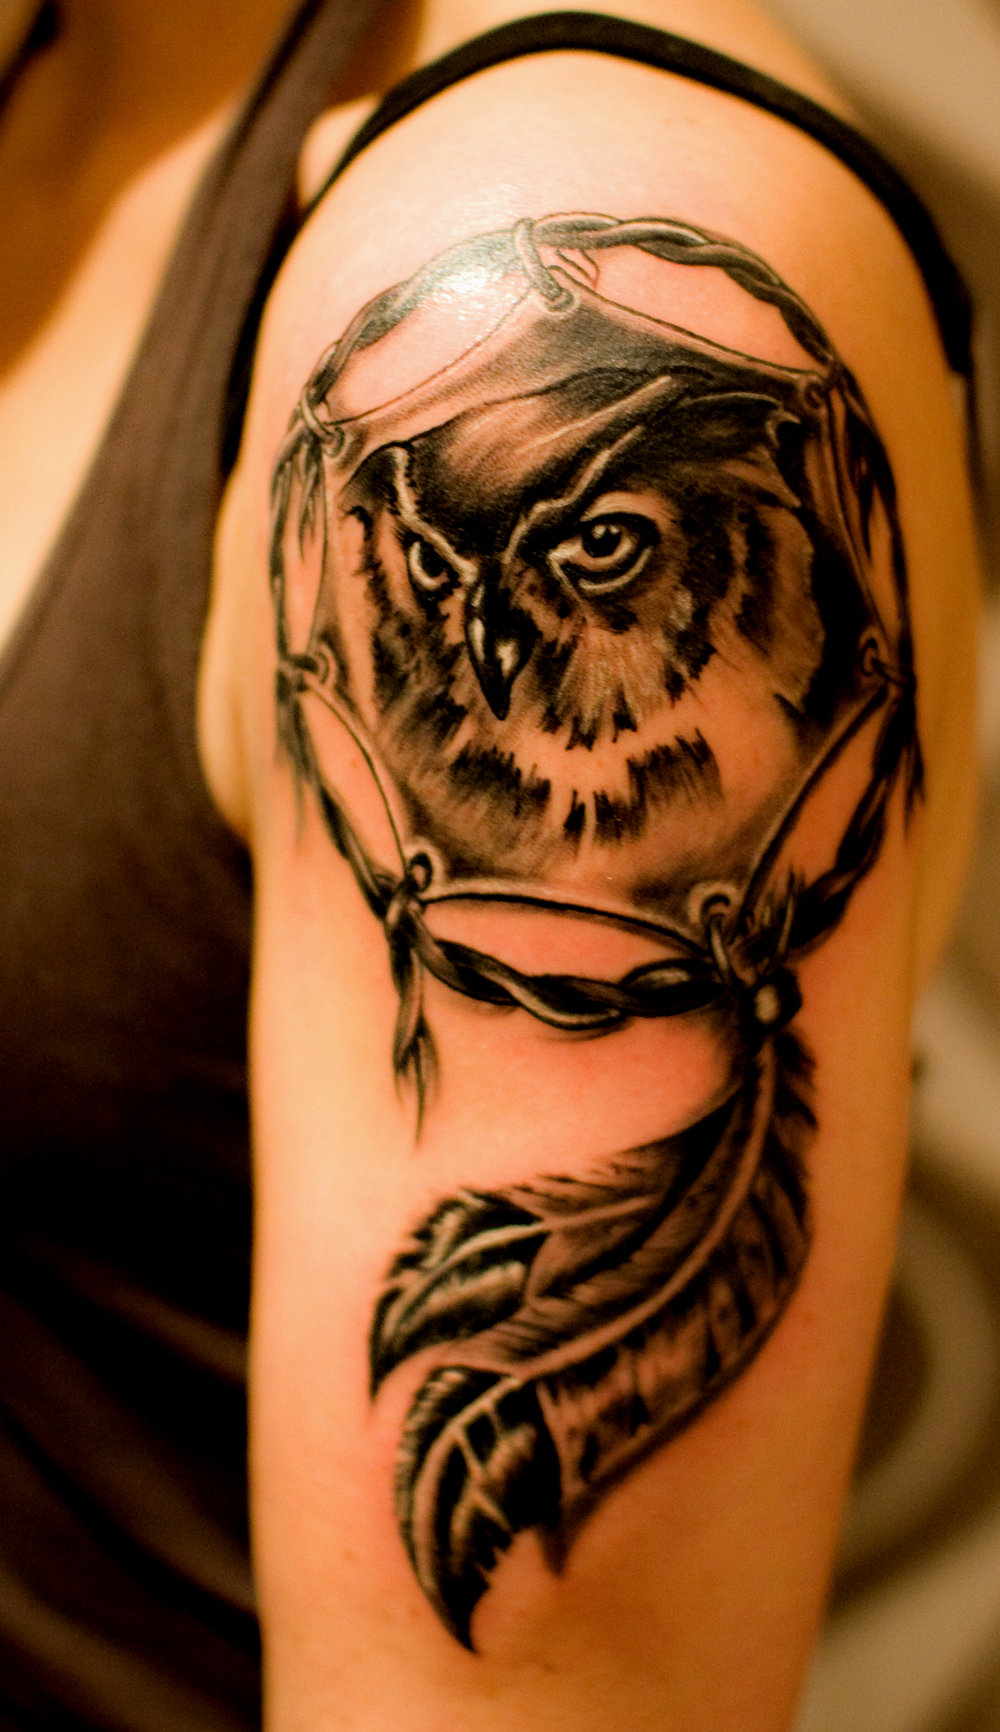 Owl Dream Catcher Tattoo On Upper Arm